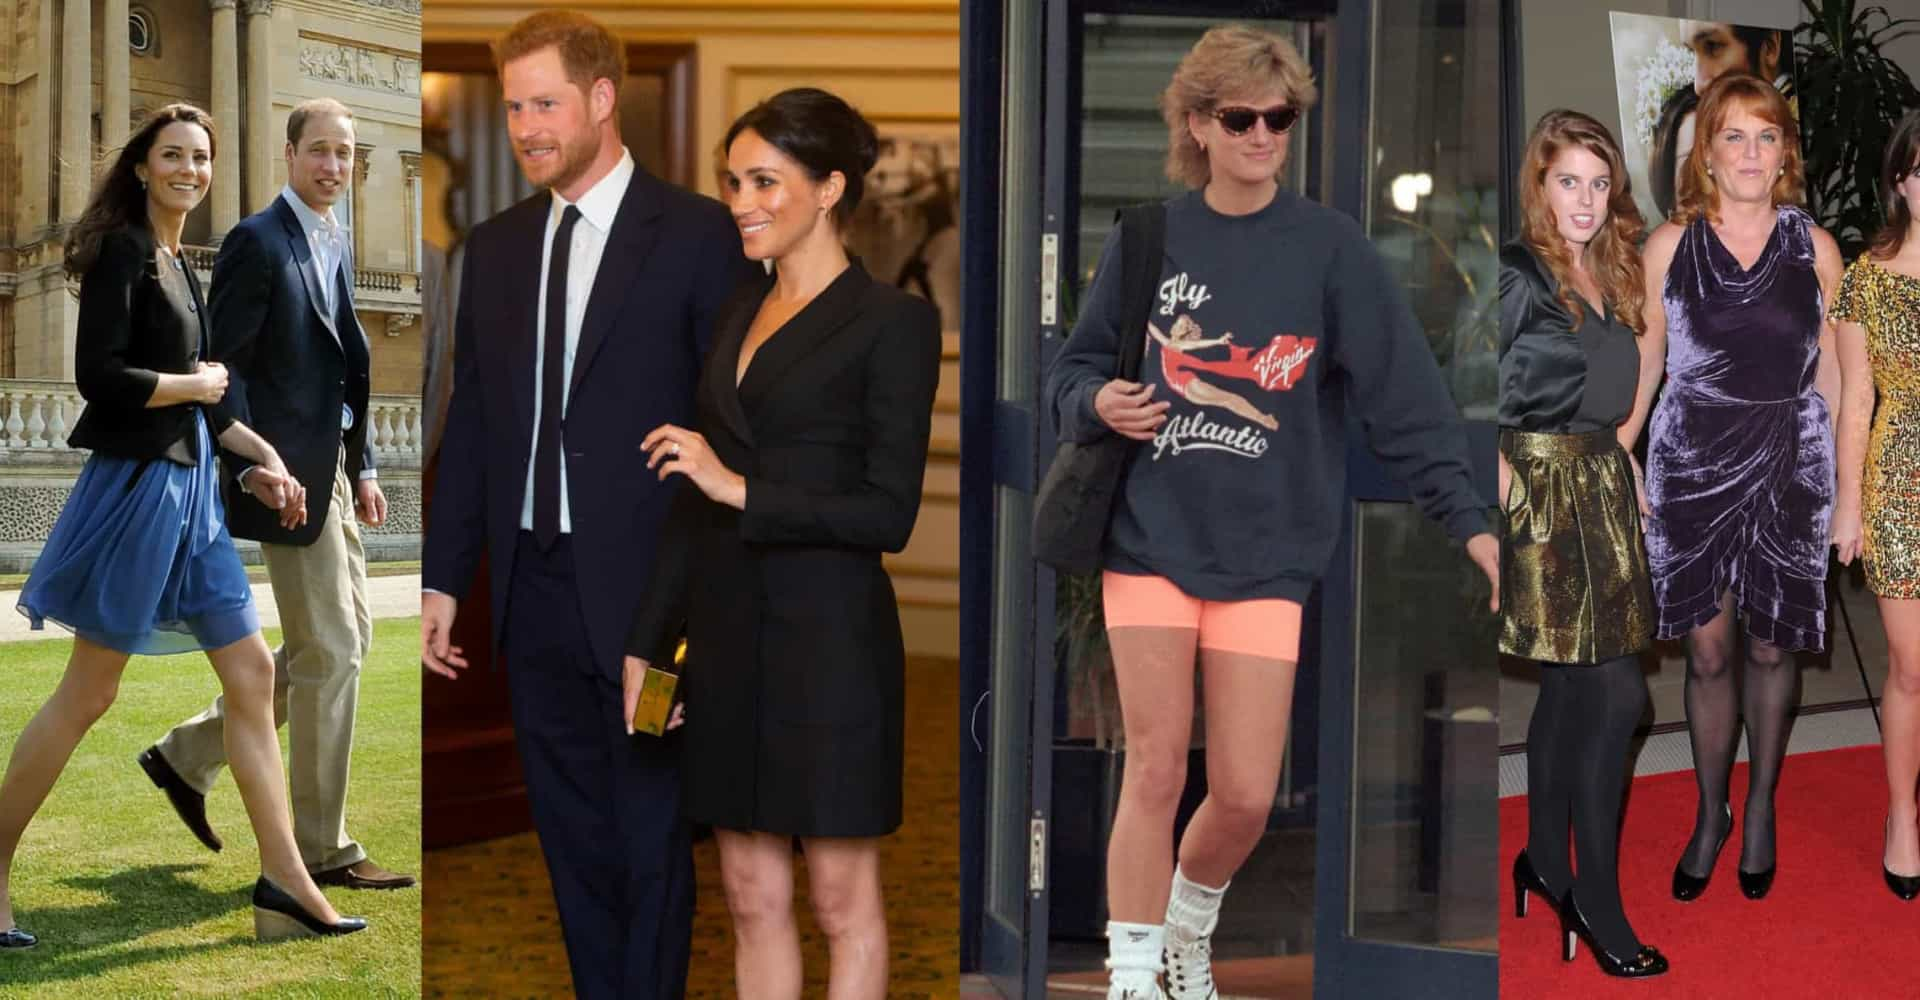 Royals with legs! Meghan Markle isn't the only duchess to wear short skirts